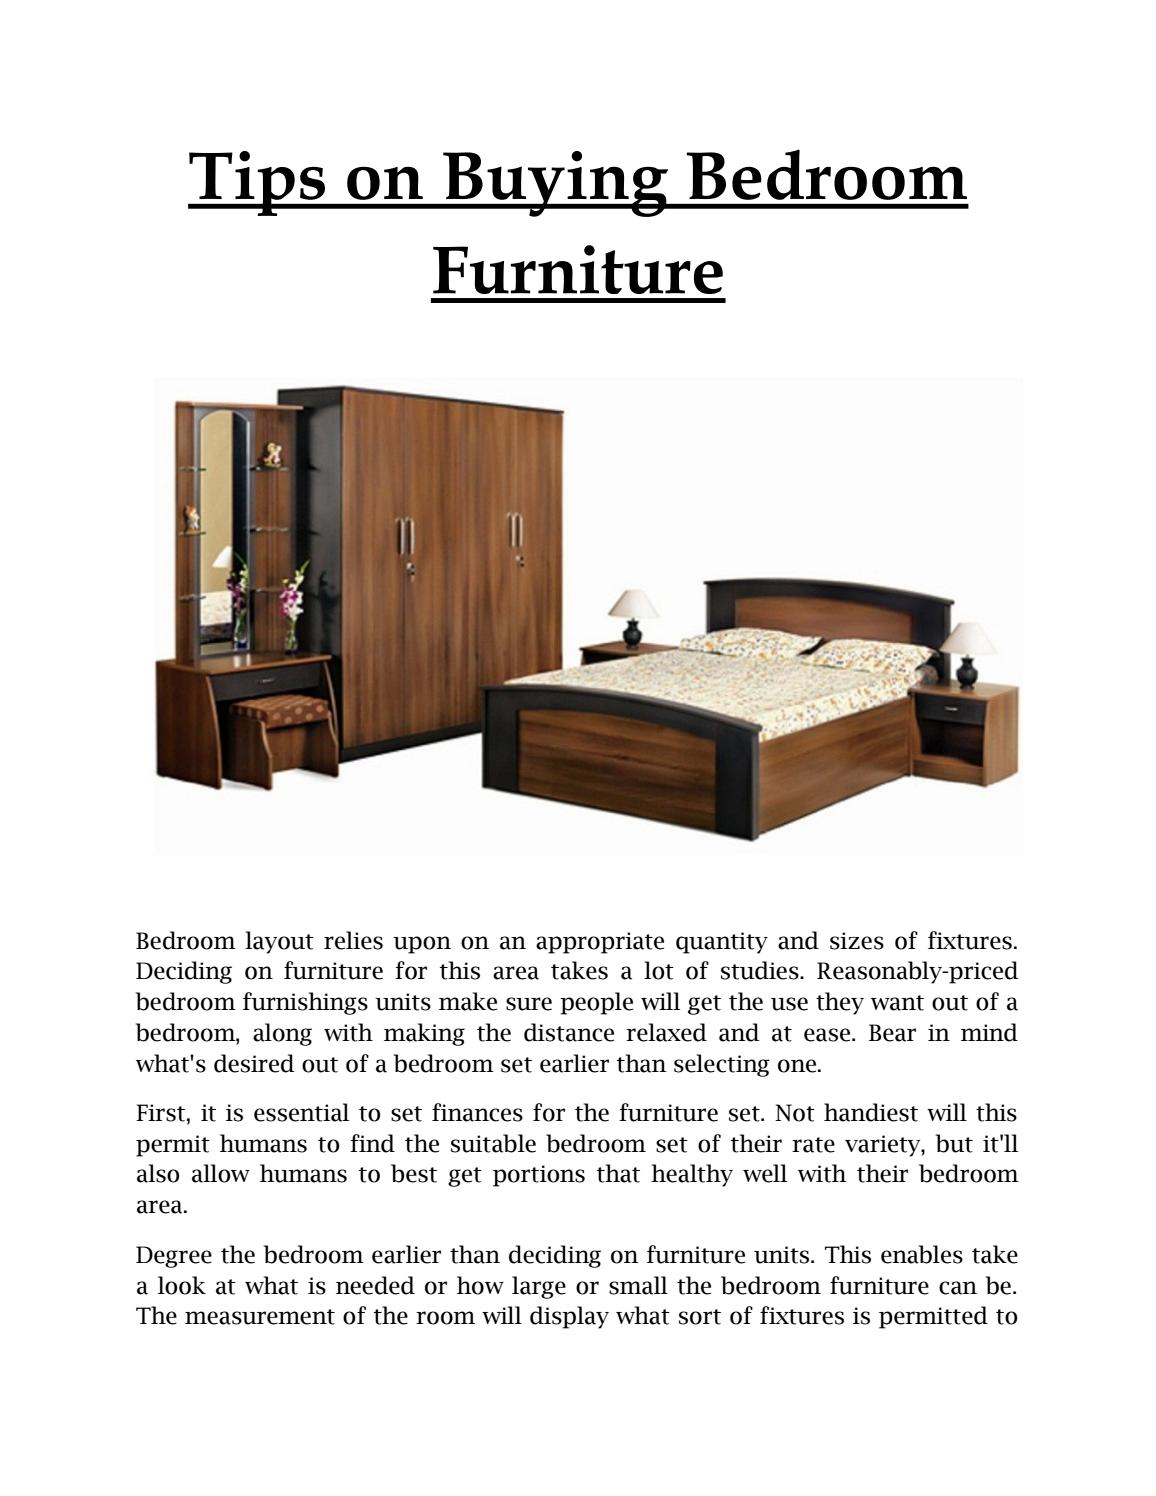 Buy Modern Furniture For Bedroom Online By Loisperry30 Issuu